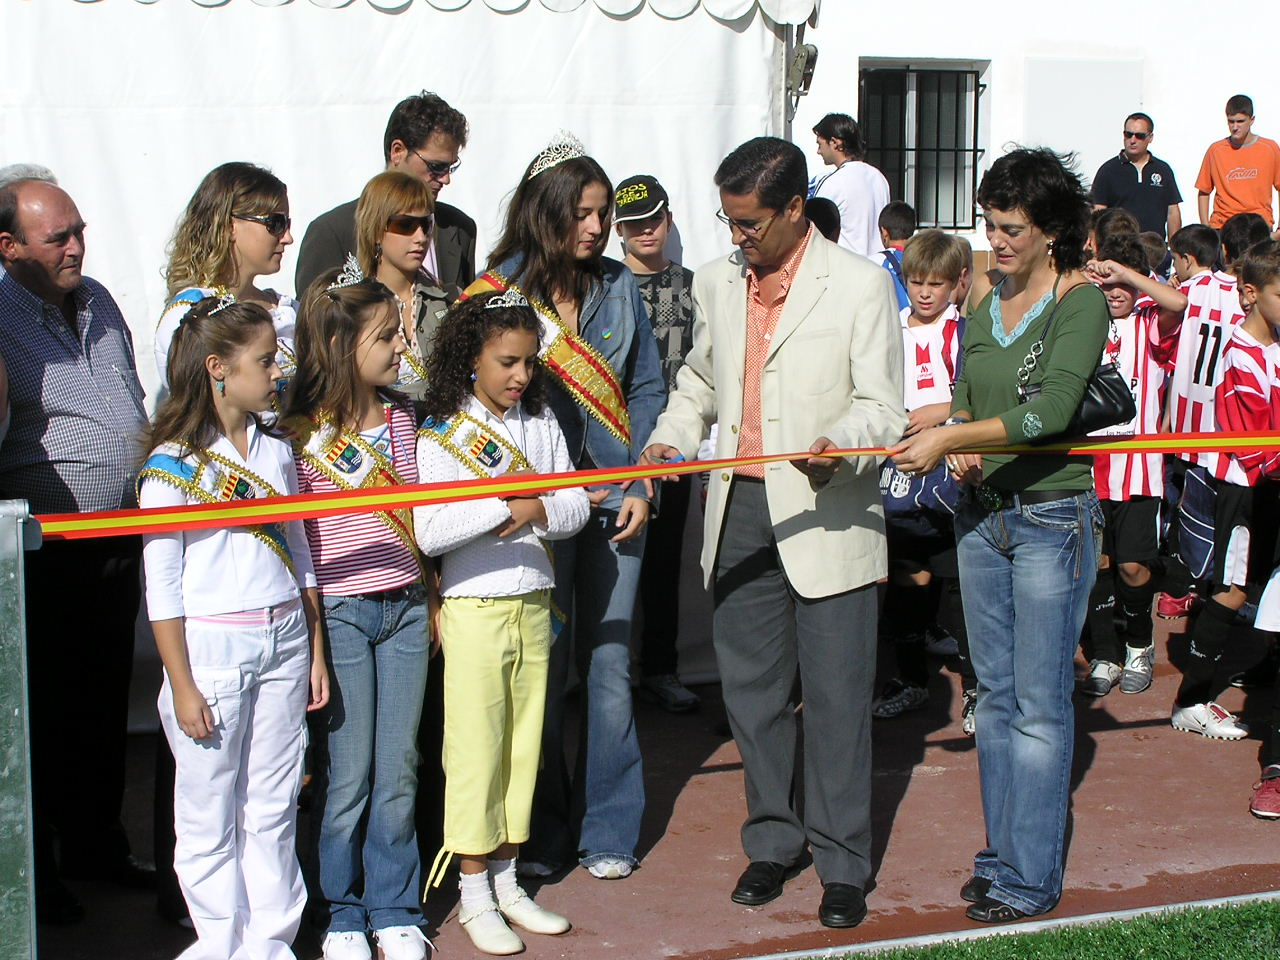 Turning back the clock, Mayor José Manuel Butron cuts the ribbon following a new surface laid in 2005. Photo: Javier Fernandez.